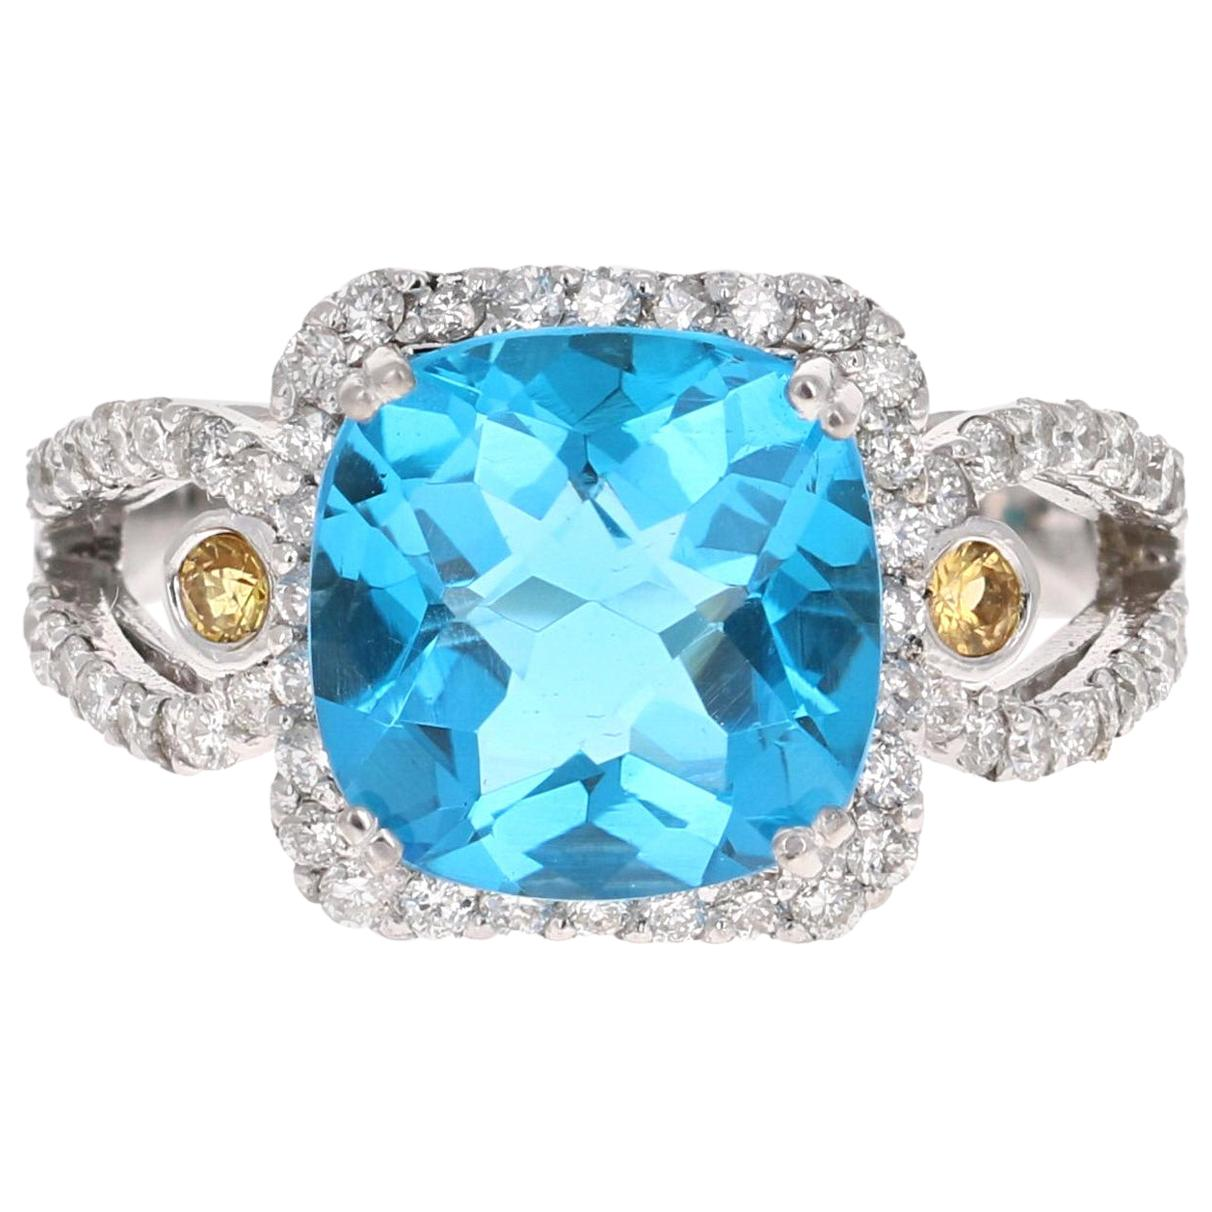 4.61 Carat Blue Topaz Sapphire Diamond White Gold Cocktail Ring